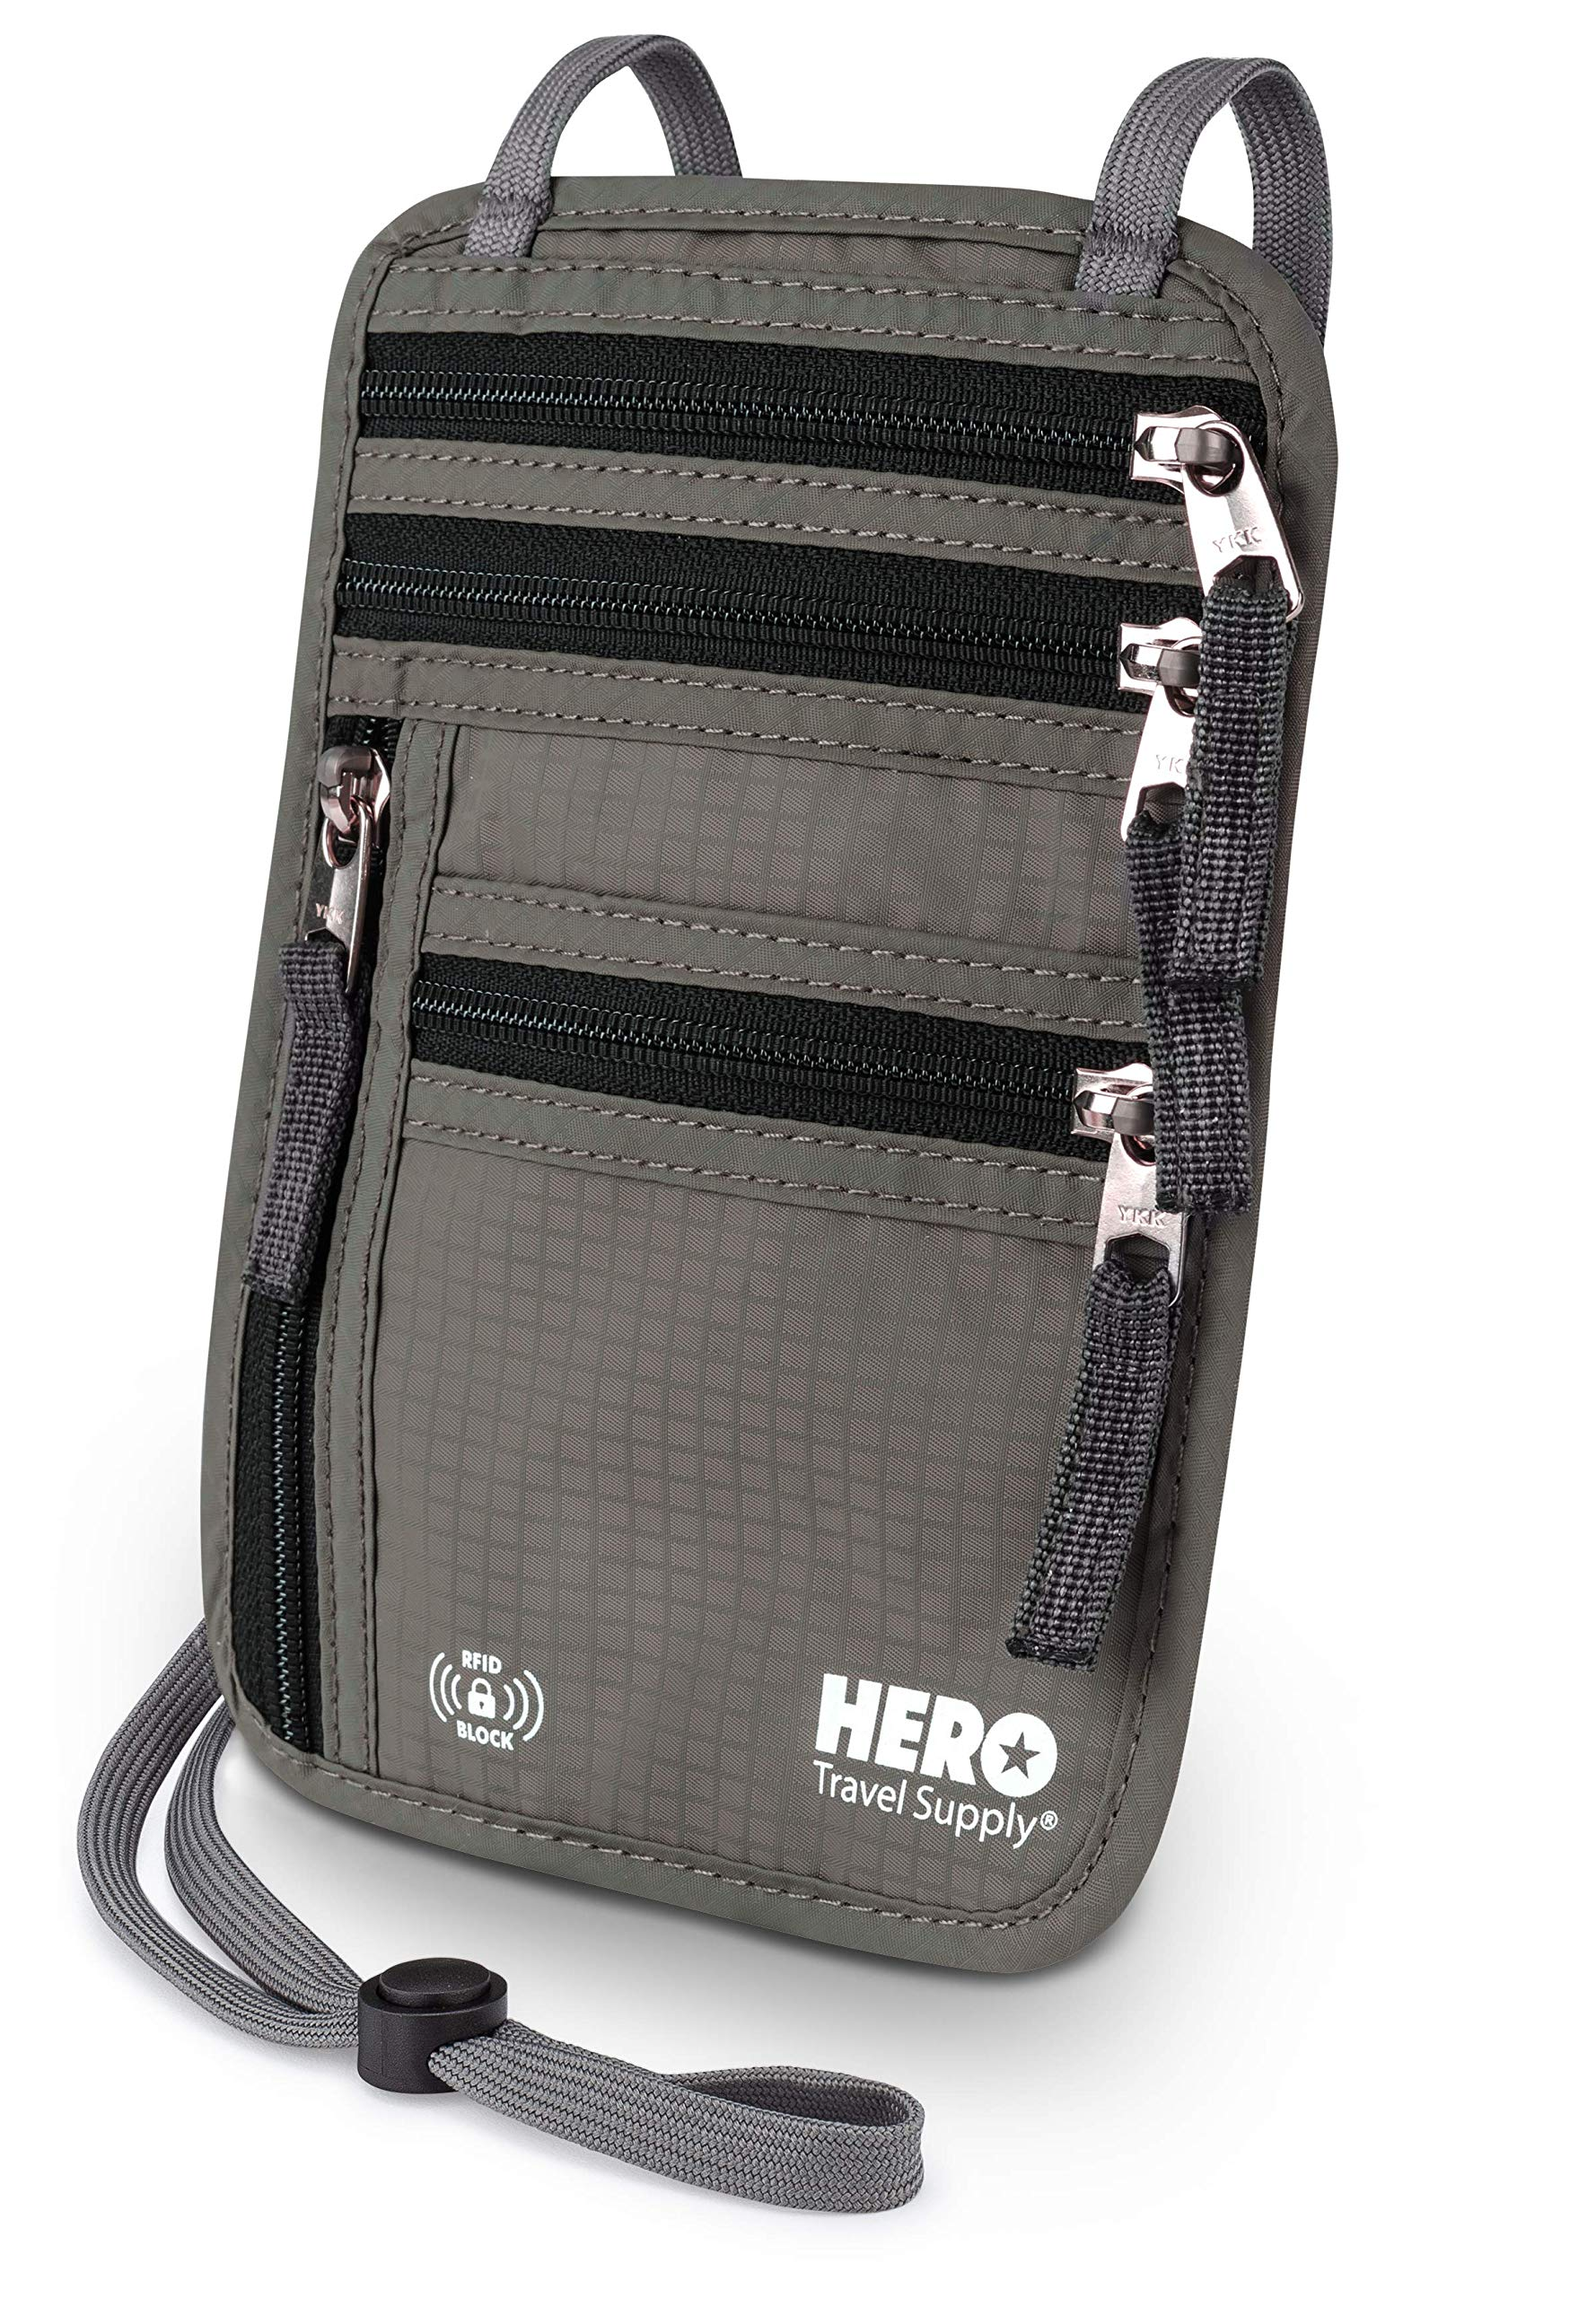 HERO Neck Wallet - RFID Blocking Passport Holder - Easy to Conceal Travel Pouch - Includes Ebook on How to Avoid Pickpockets by Asher & Lyric by Hero Travel Supply